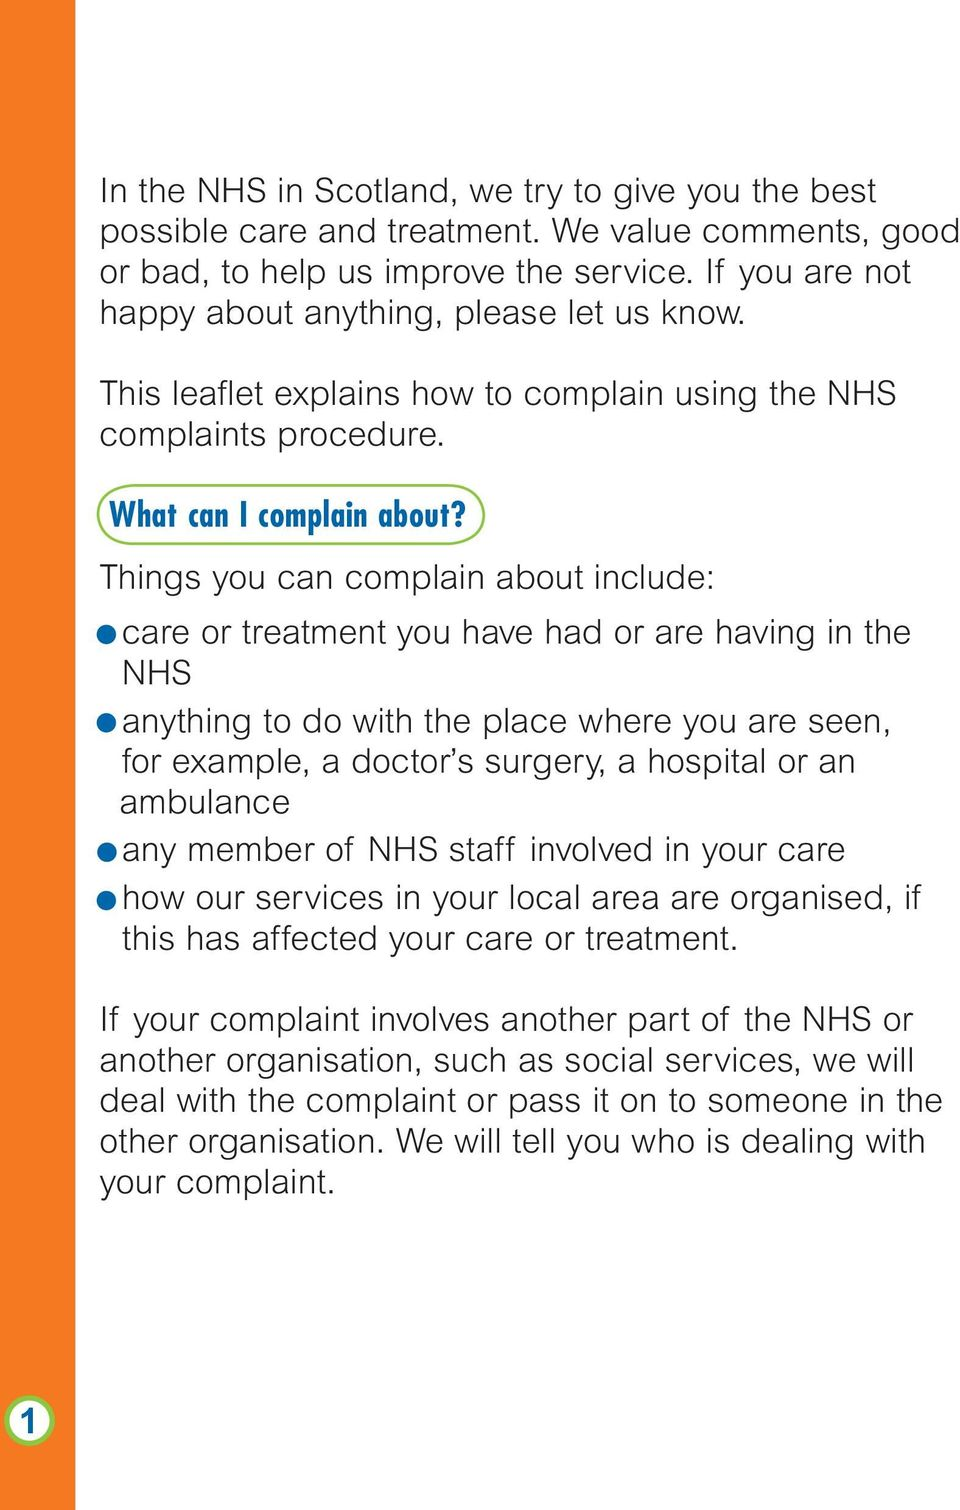 Things you can complain about include: care or treatment you have had or are having in the NHS anything to do with the place where you are seen, for example, a doctor s surgery, a hospital or an